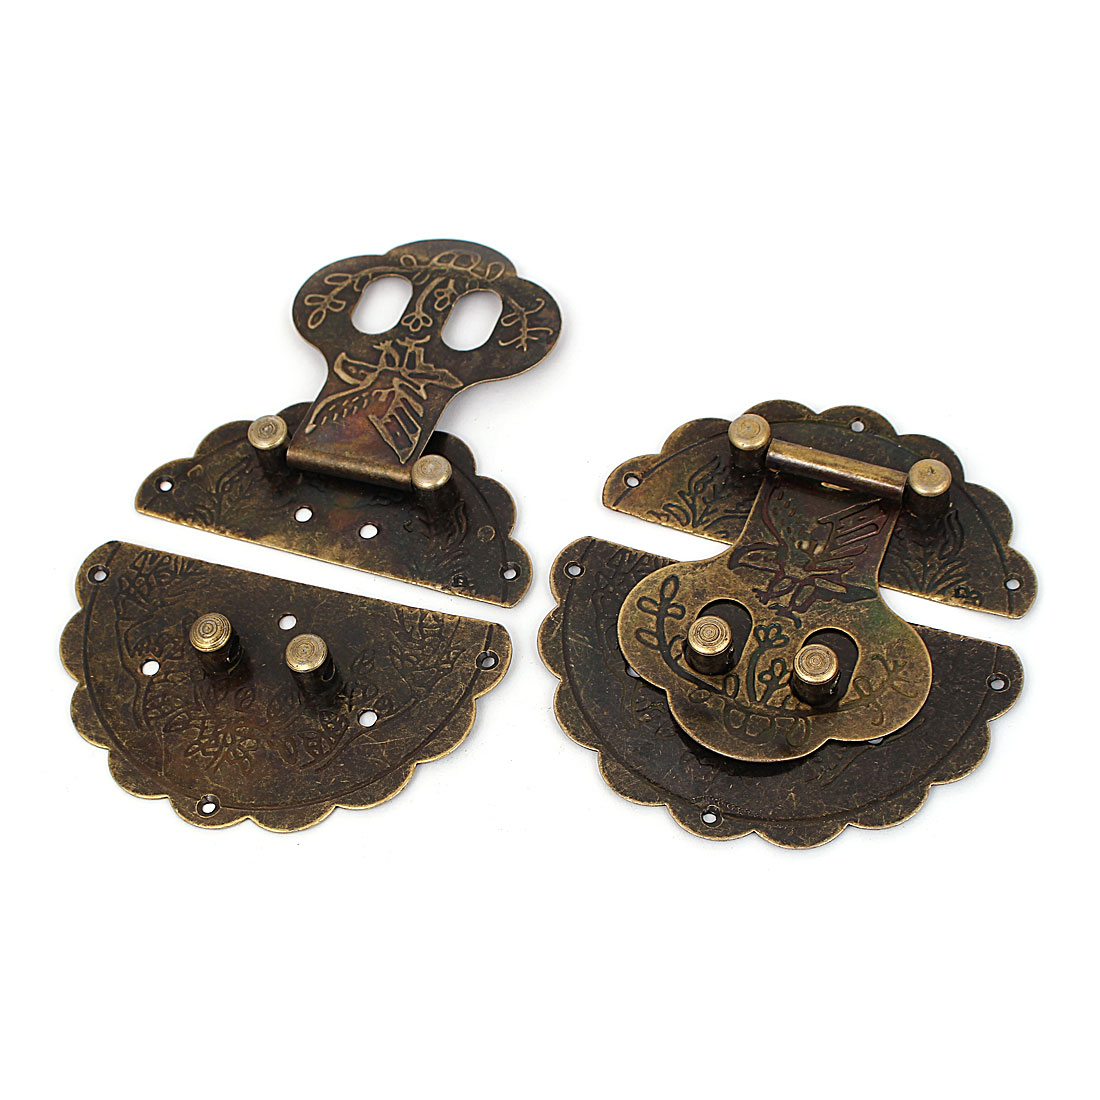 Vintage Style Wooden Case Chest Box 100mm Dia Round Clasp Hasp Latches 2pcs